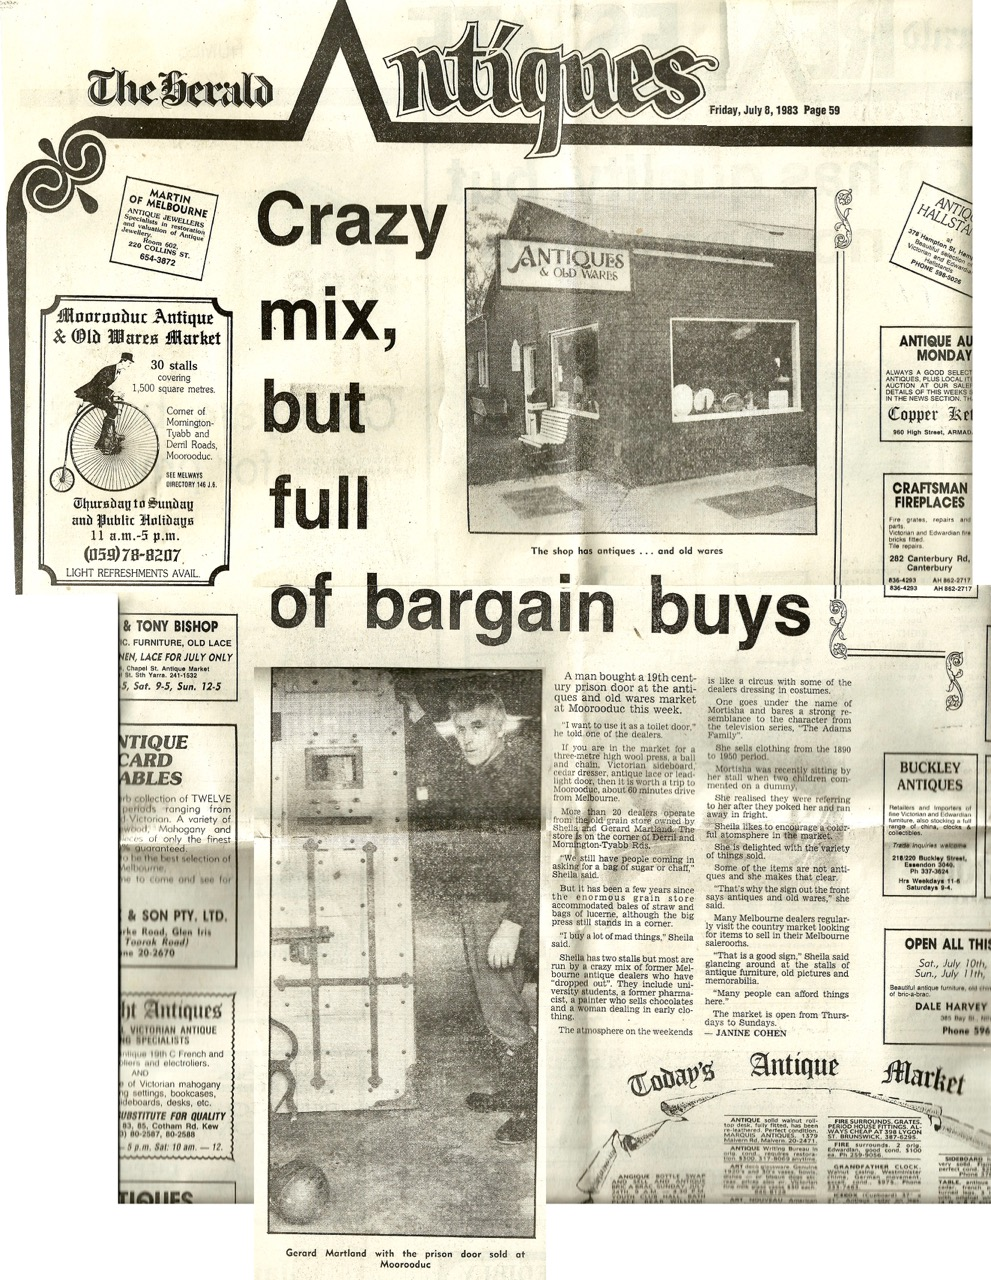 Crazy mix, but full of bargain buys - The herald Antiques - Friday, July 8 1983 pg.59.jpg